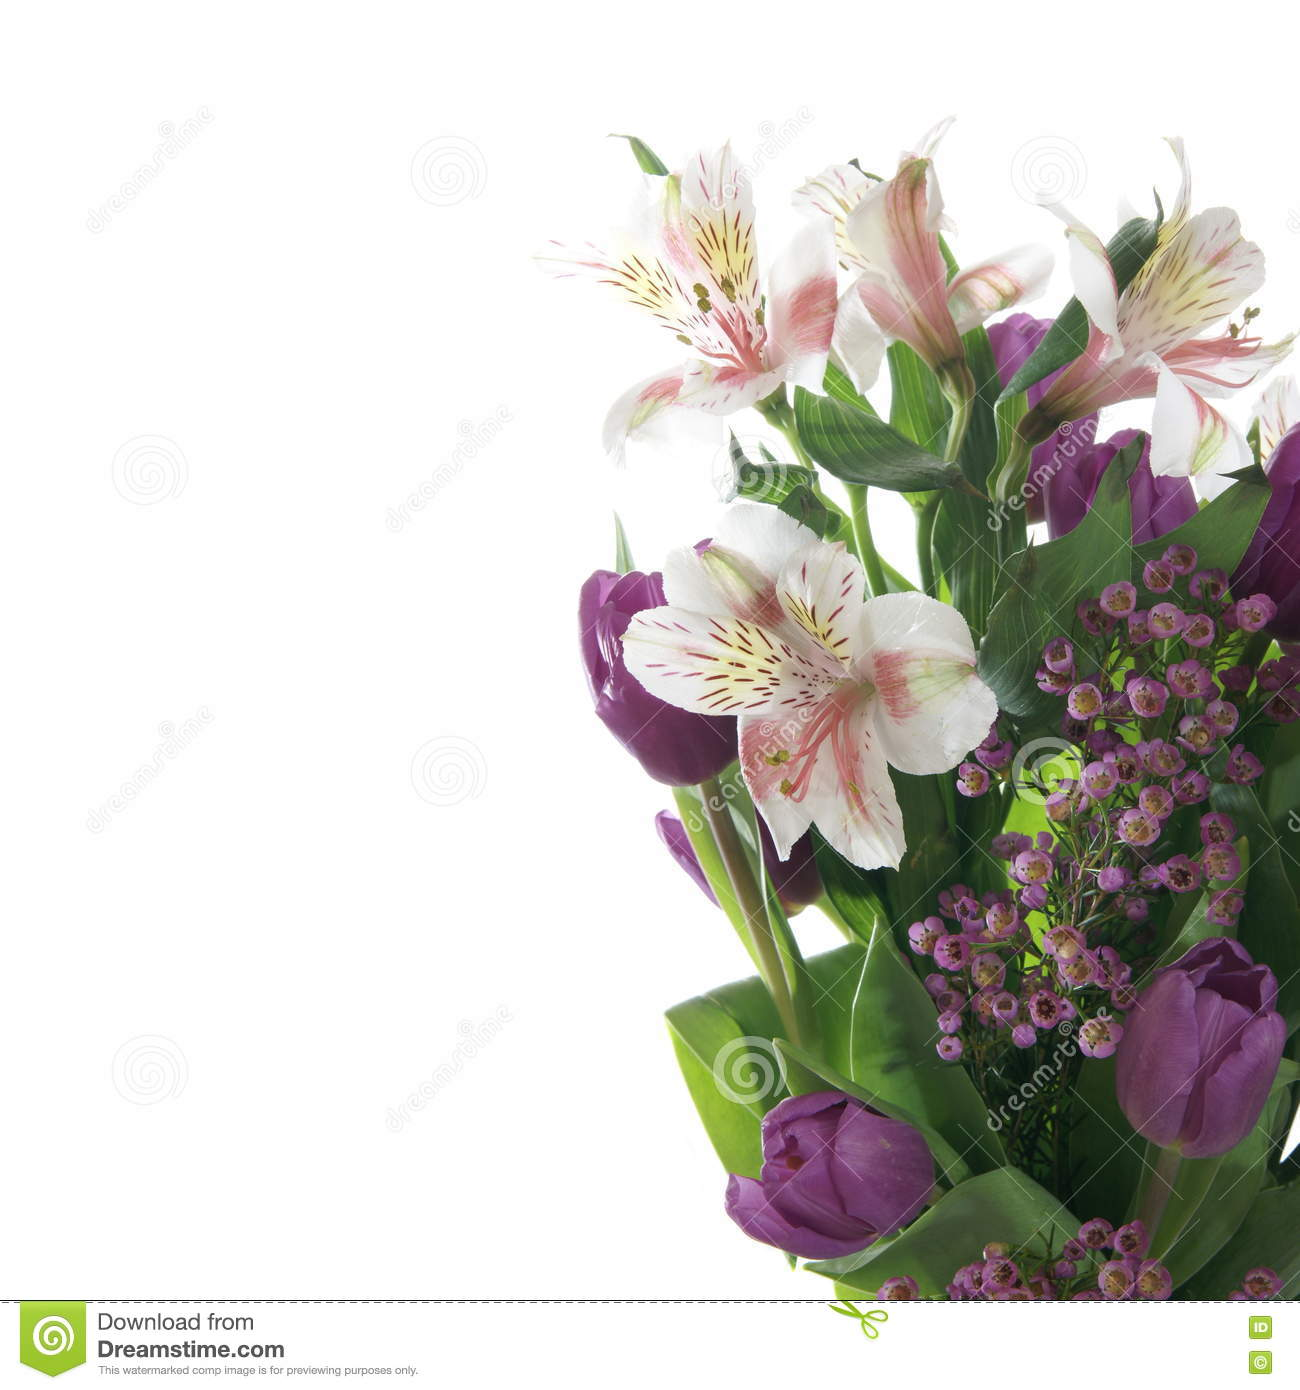 Lily flower bouquet stock image image of background 74929917 download lily flower bouquet stock image image of background 74929917 izmirmasajfo